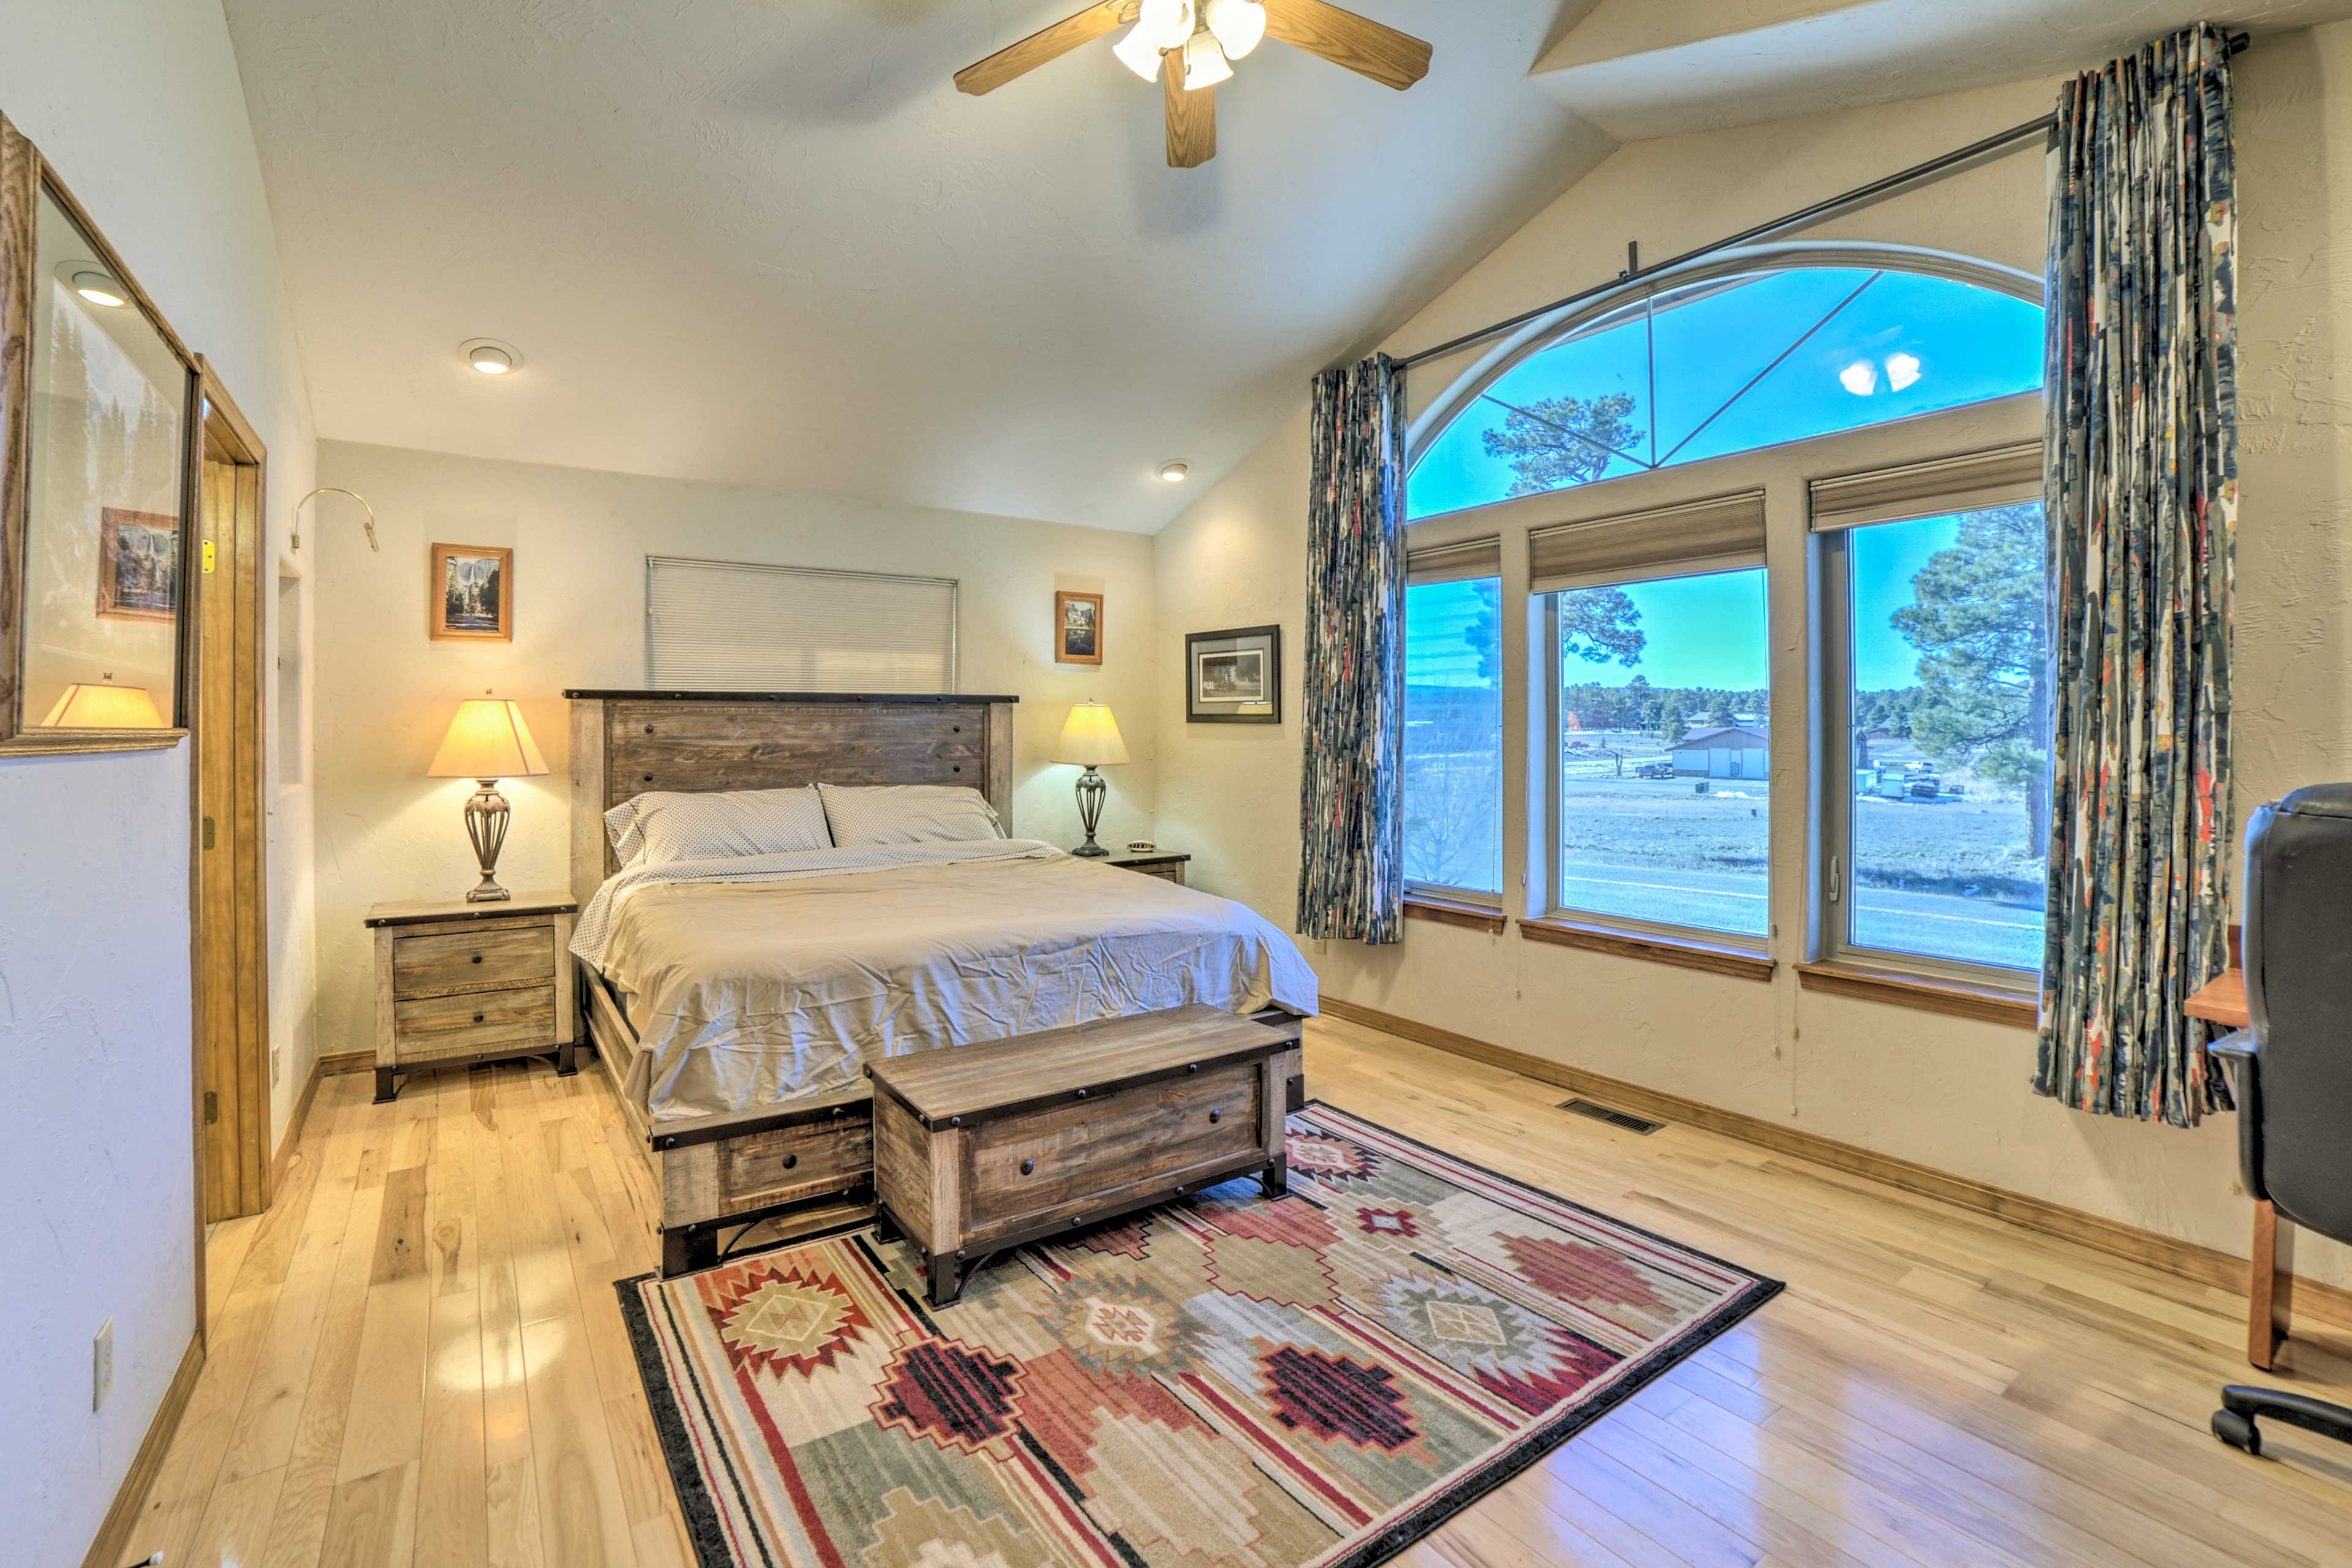 The master bedroom has a king-sized bed.